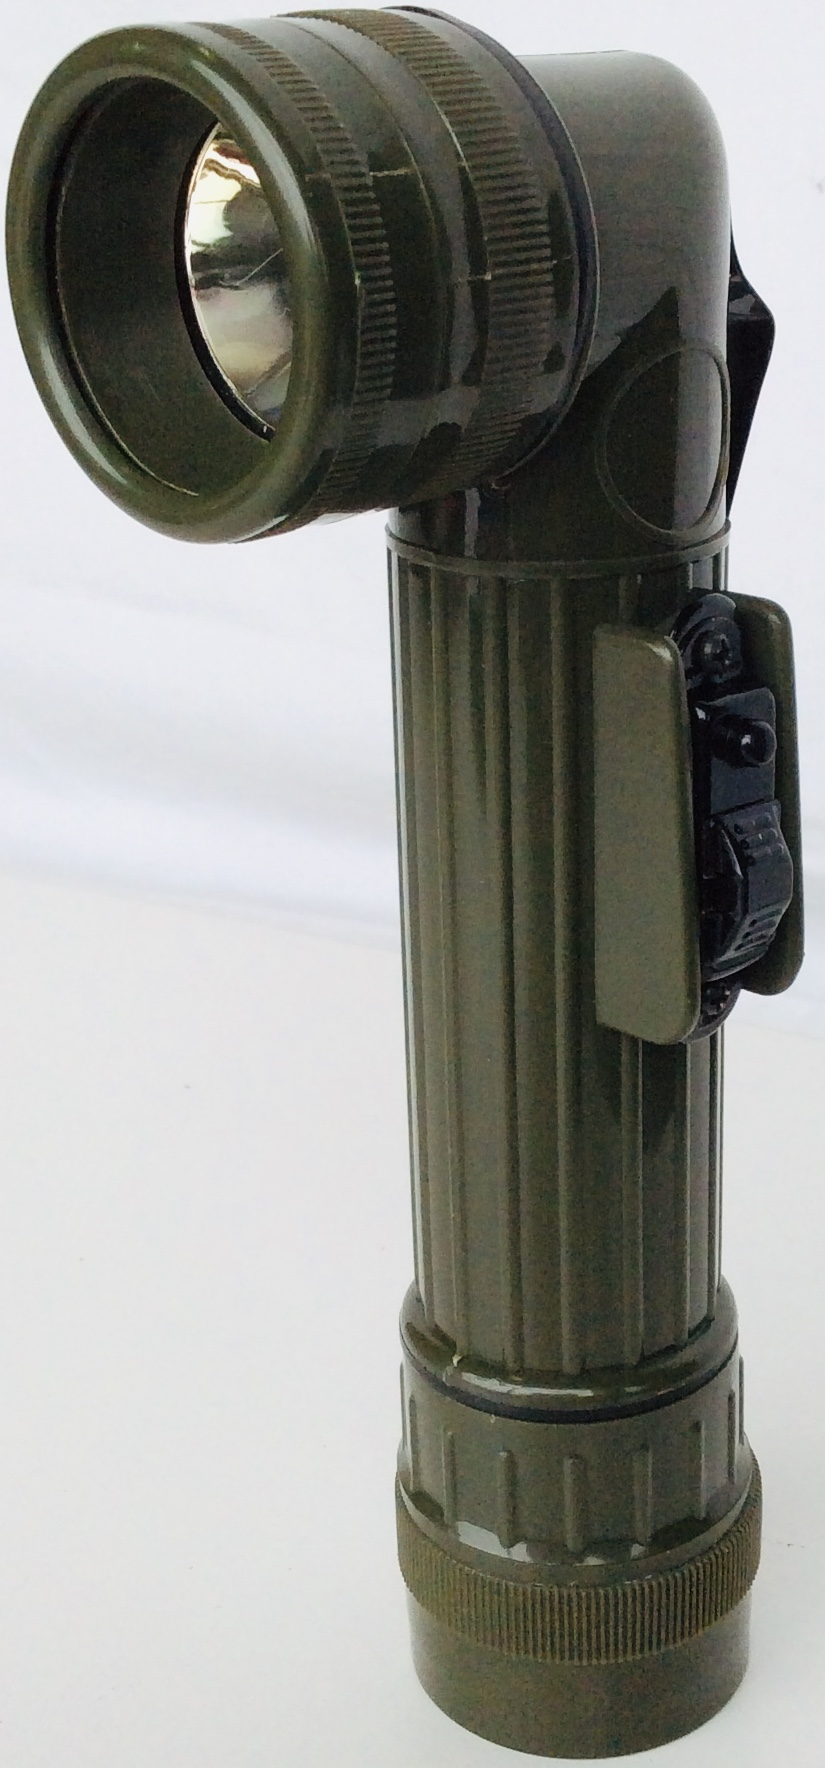 US Army Olive Green Right-Angle Torch Flashlight